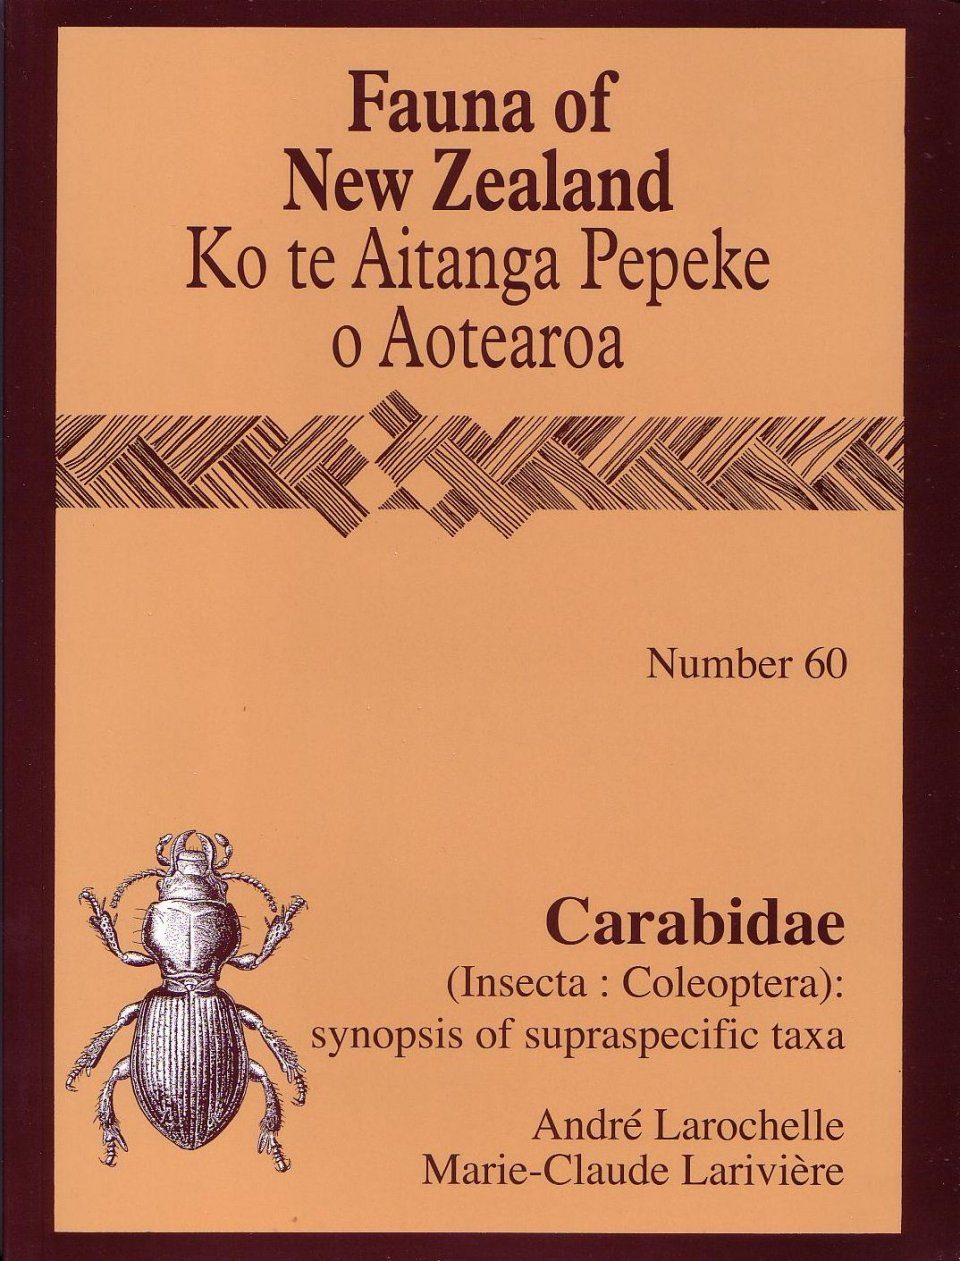 Fauna of New Zealand, No 60: Carabidae (Insecta: Coleoptera)